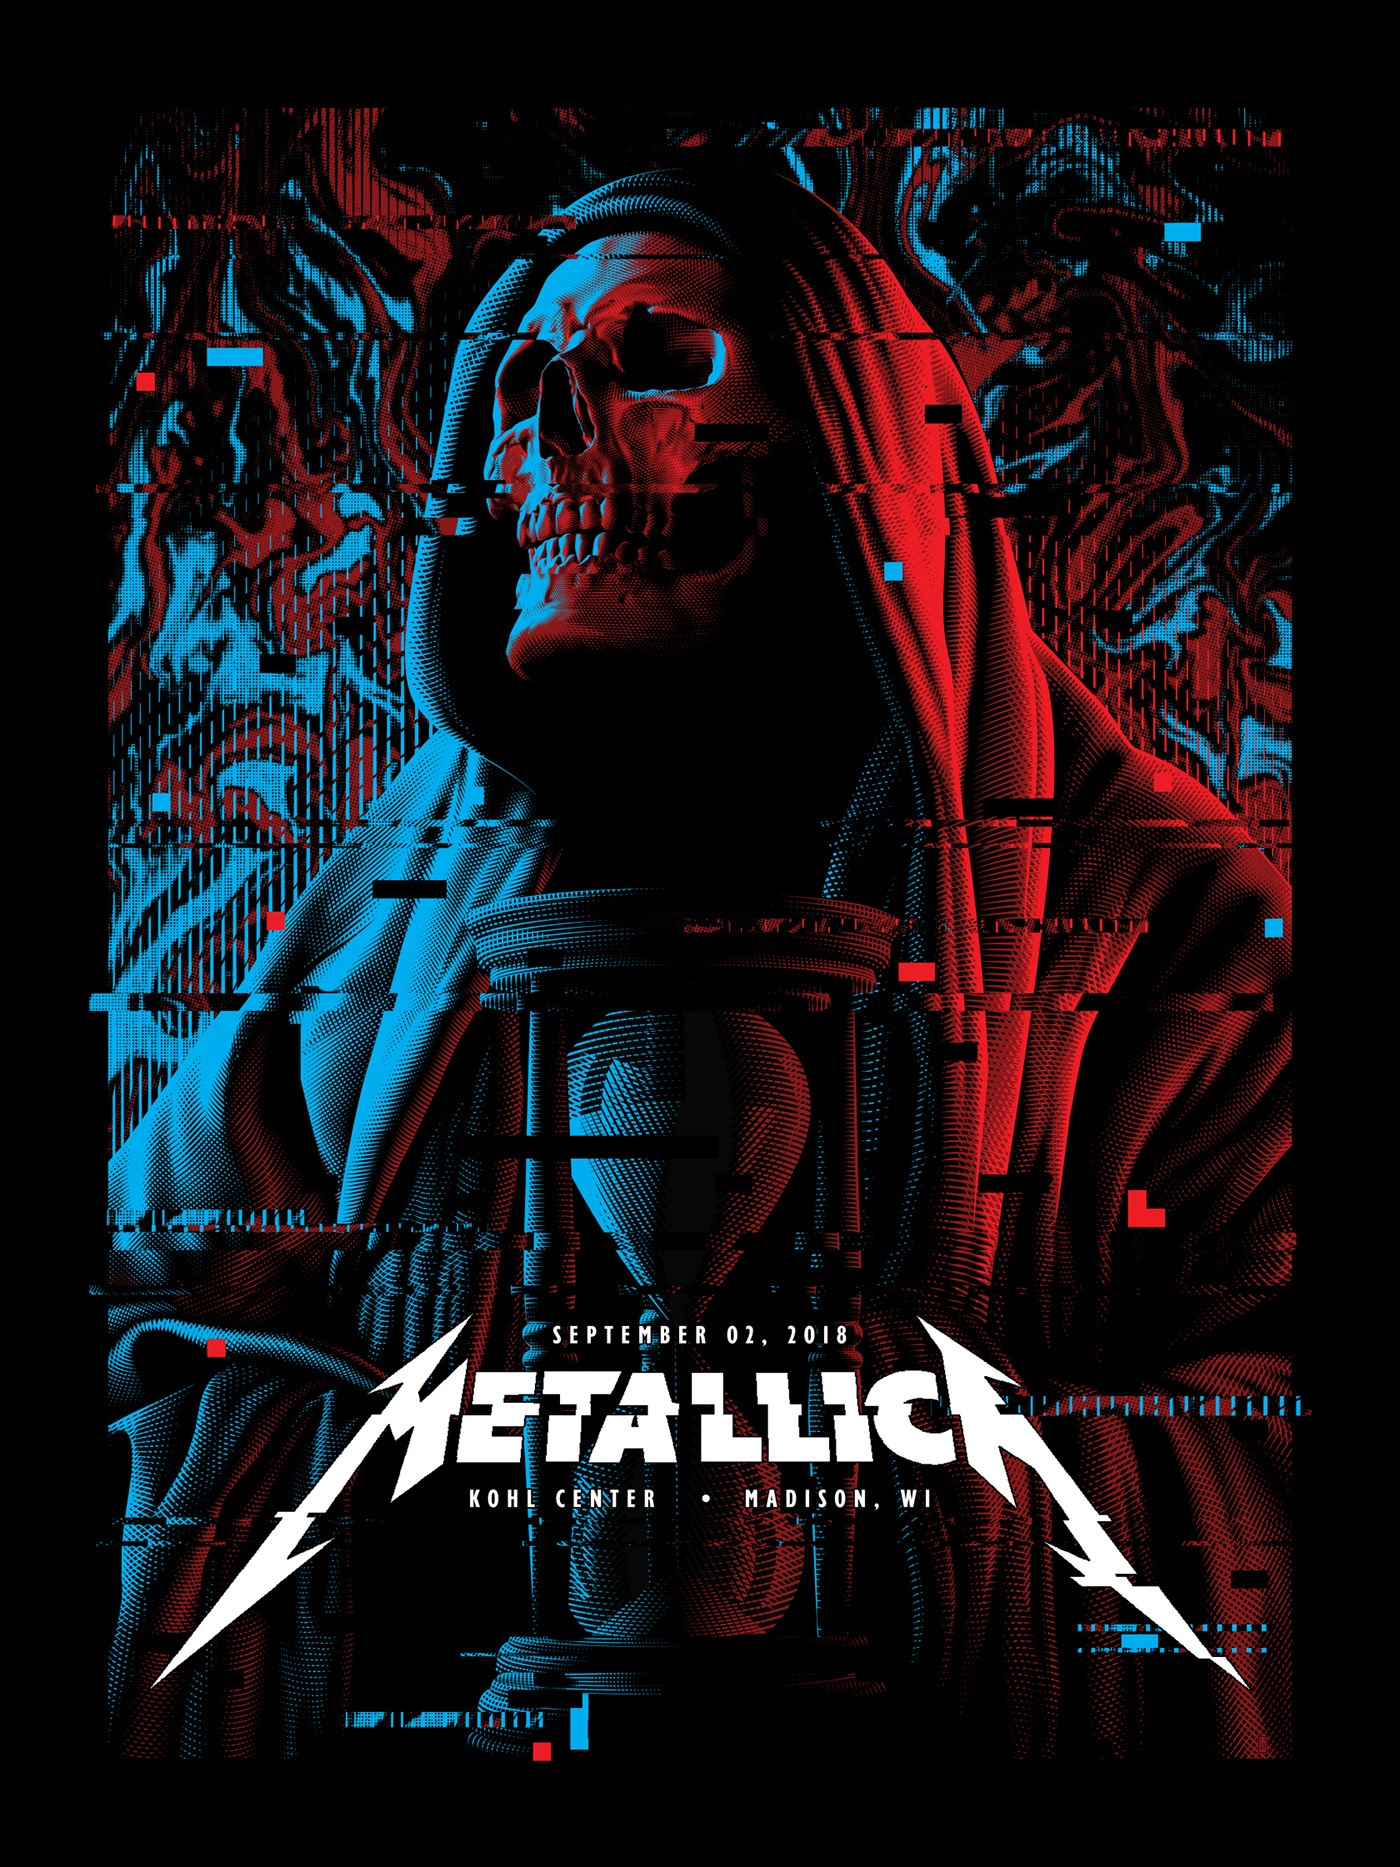 poster design portrait illustration metallica